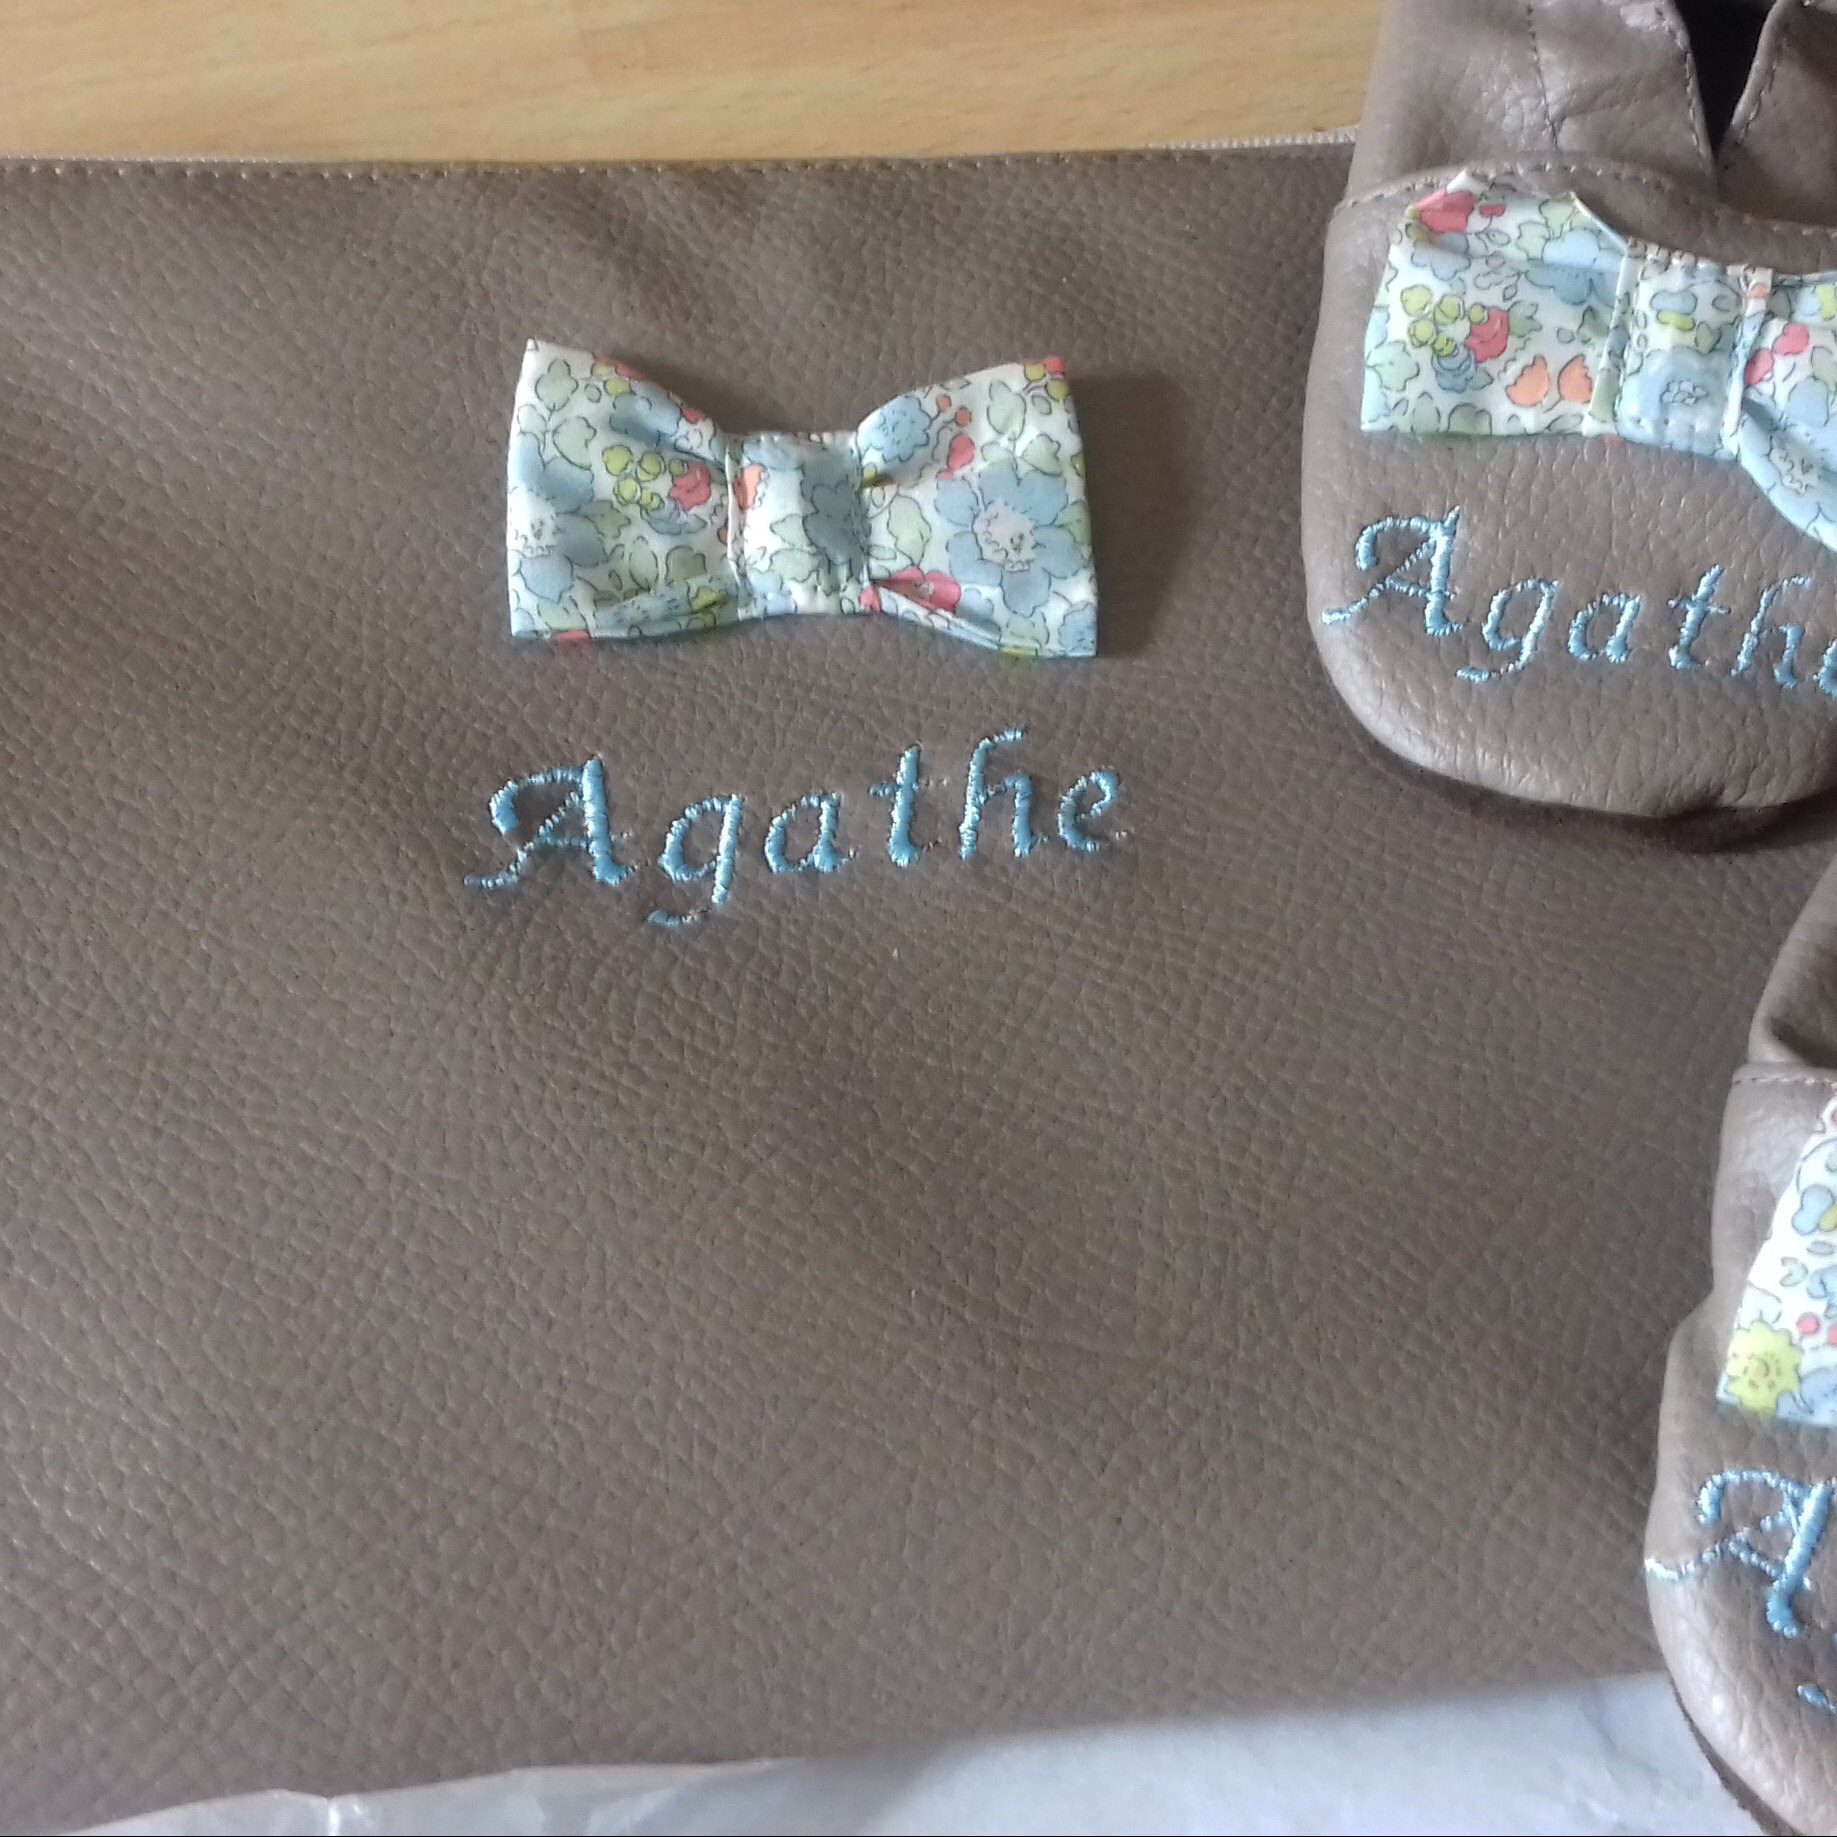 Amandine added a photo of their purchase